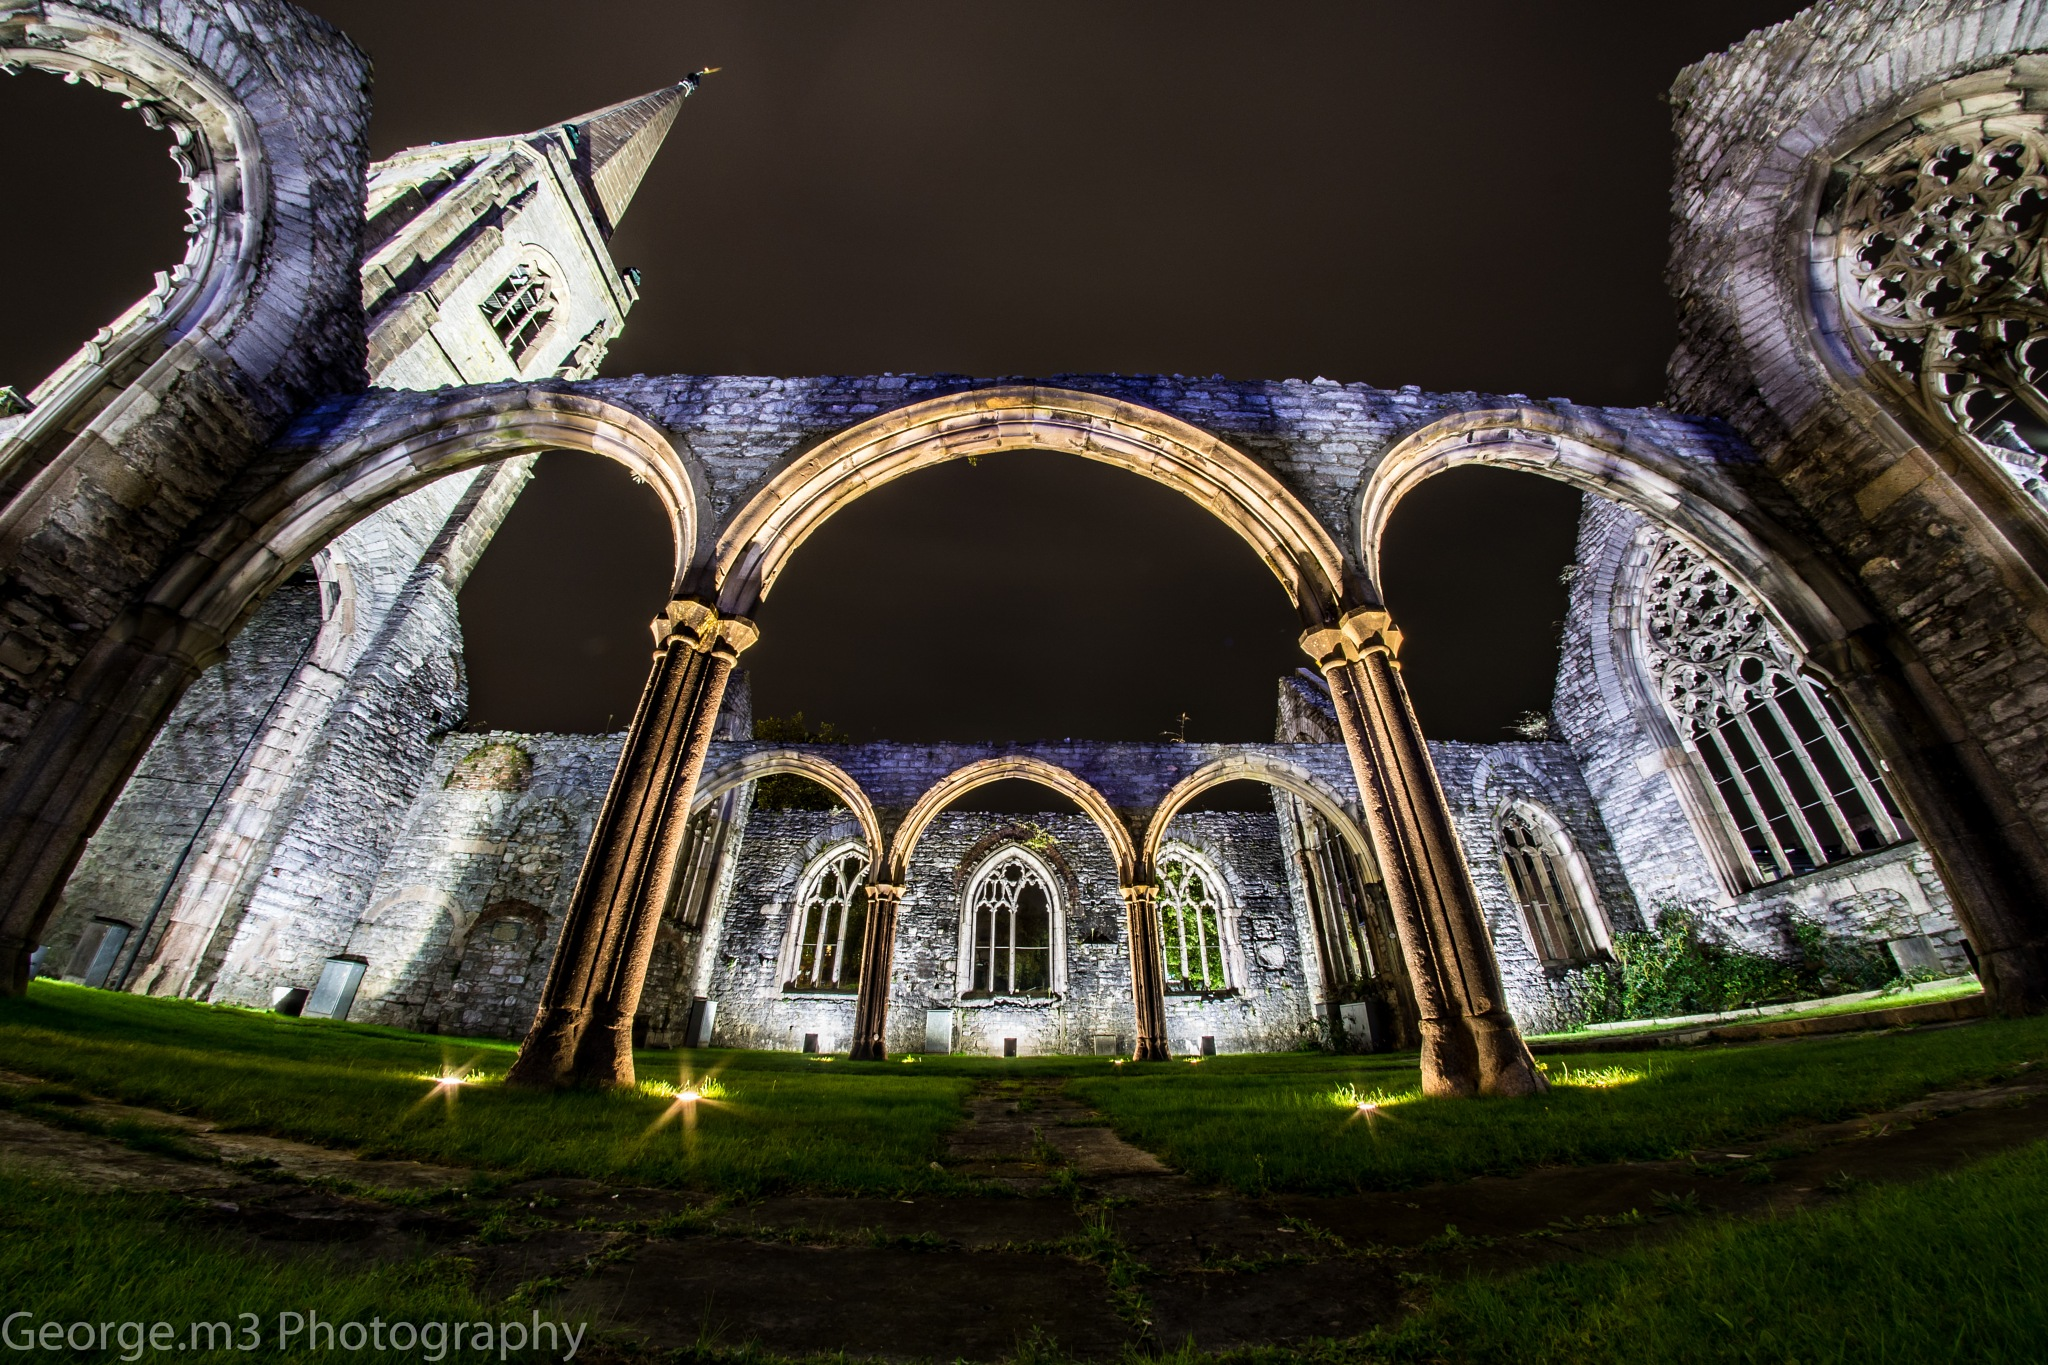 Bombed out church by George Harding